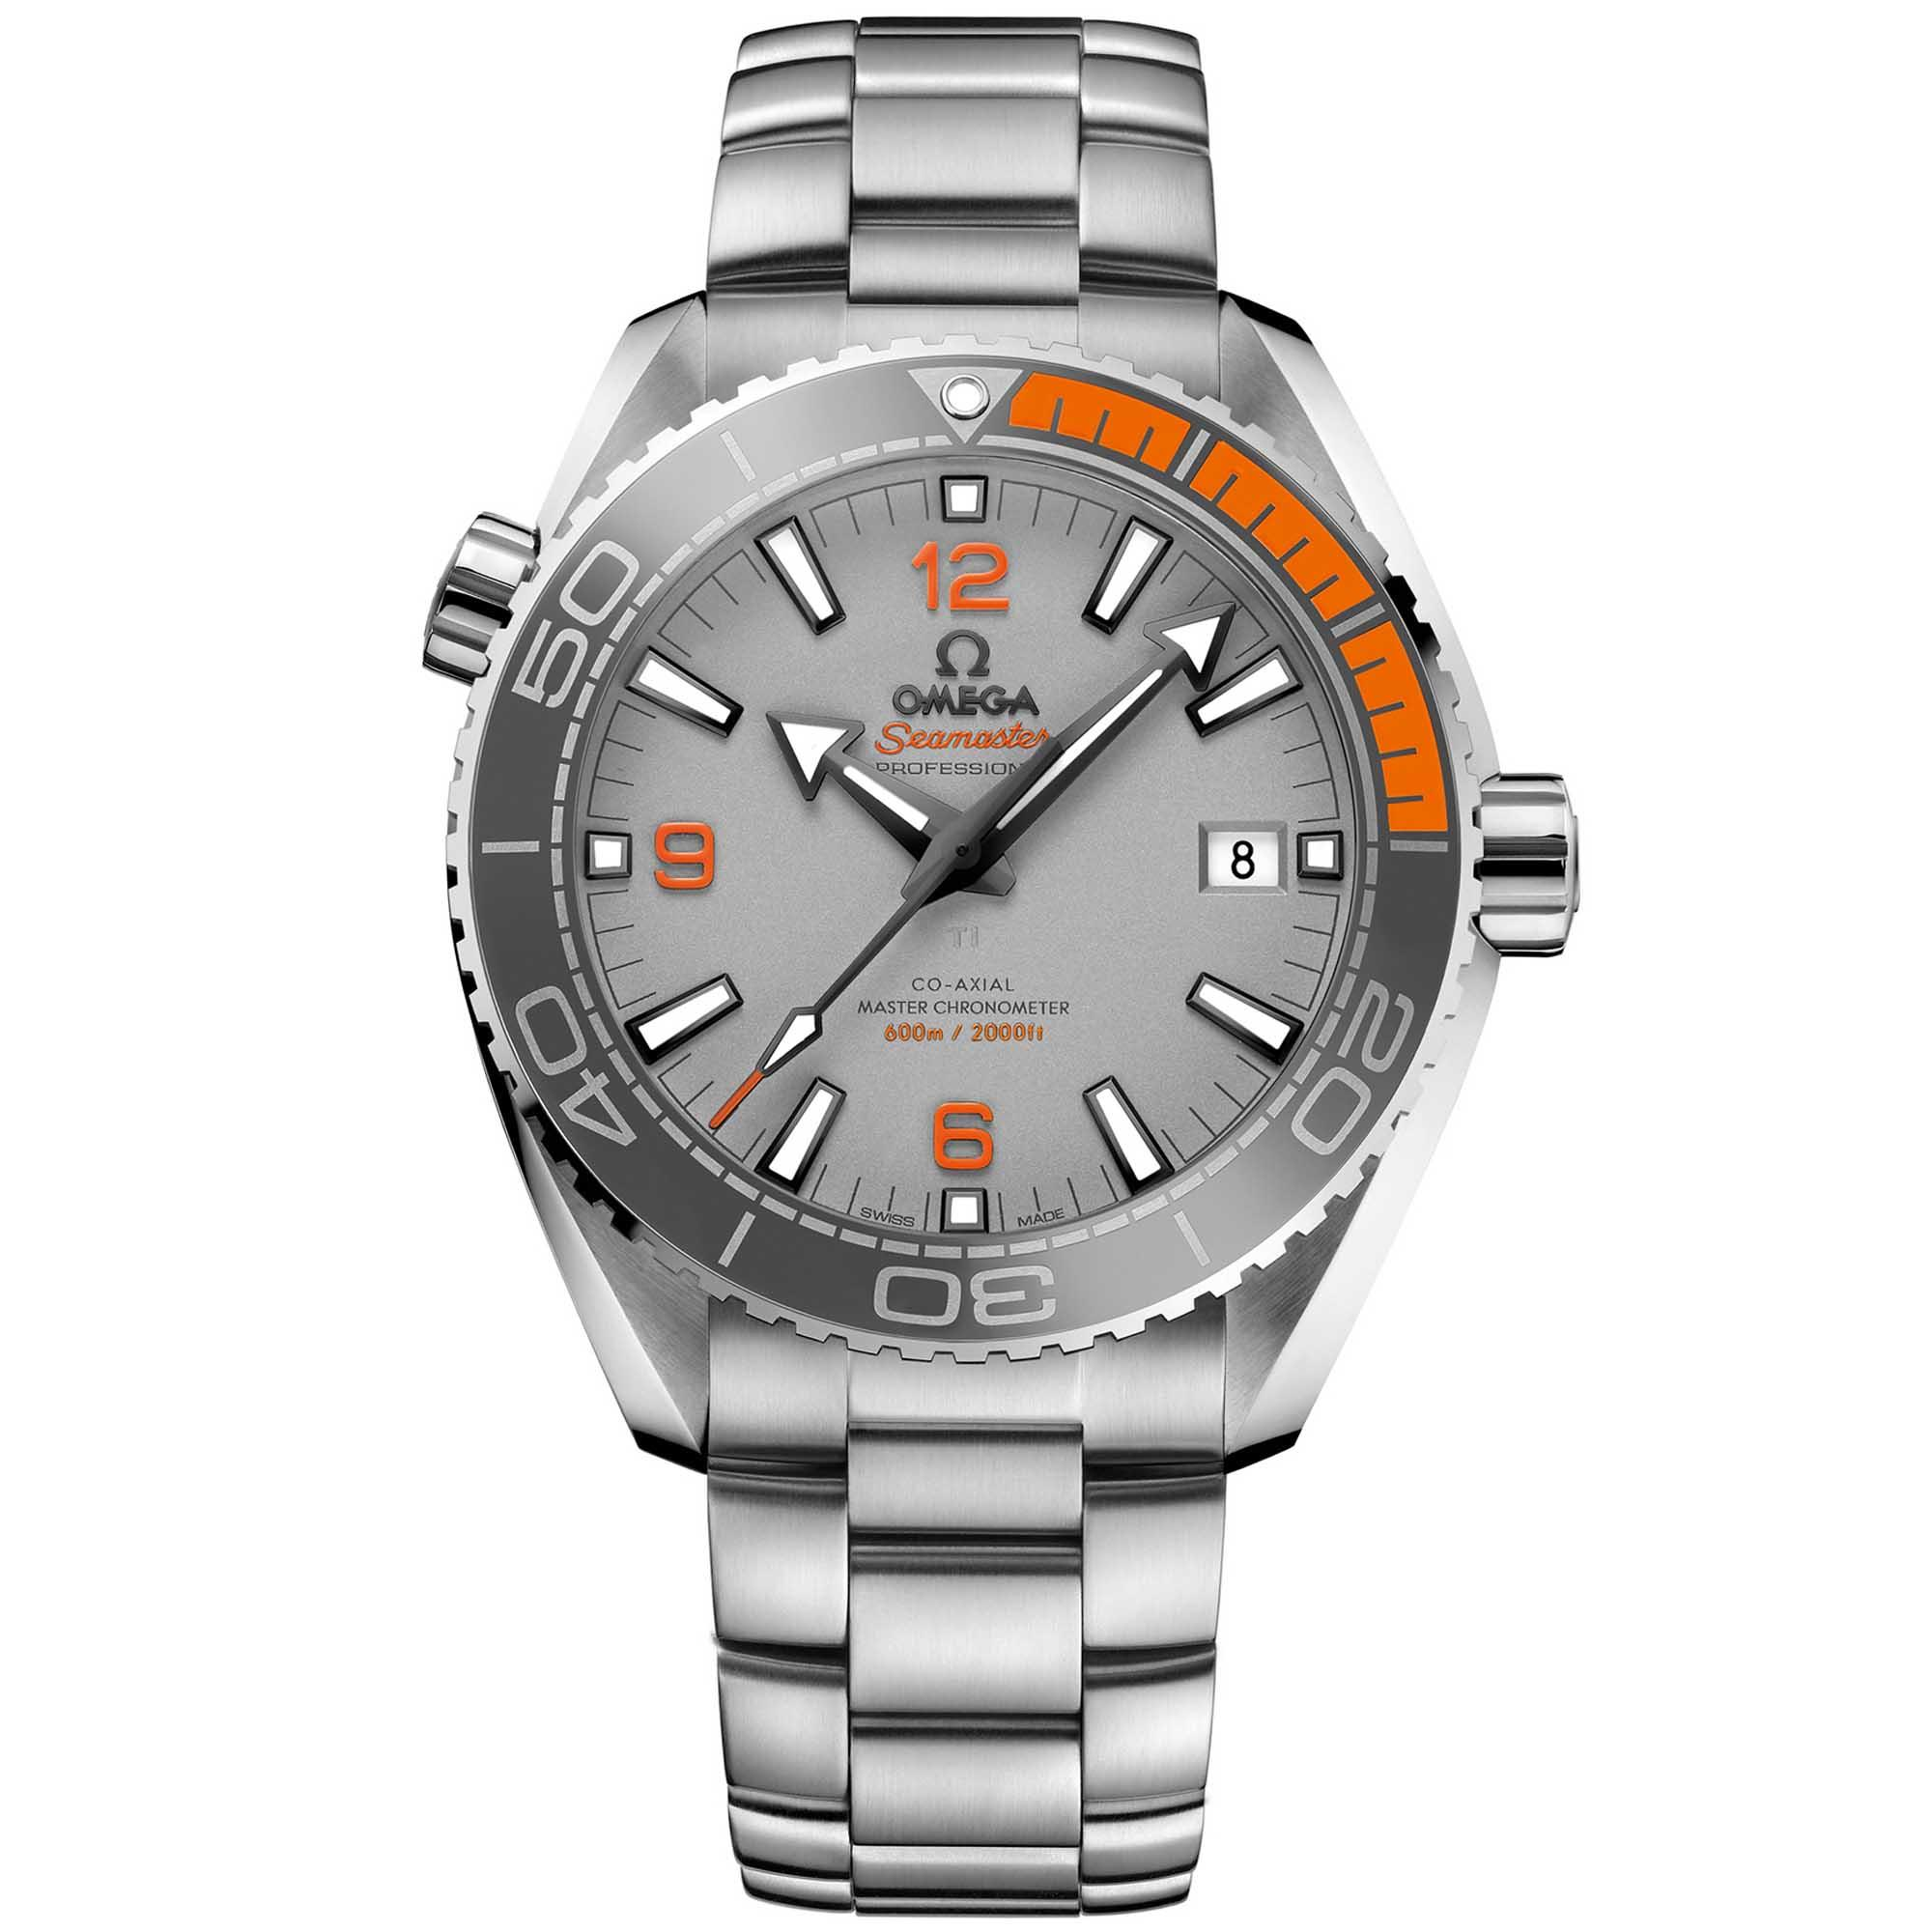 Omega - Seamaster Planet Ocean 600m Co-Axial Master Chronometer 43,5mm